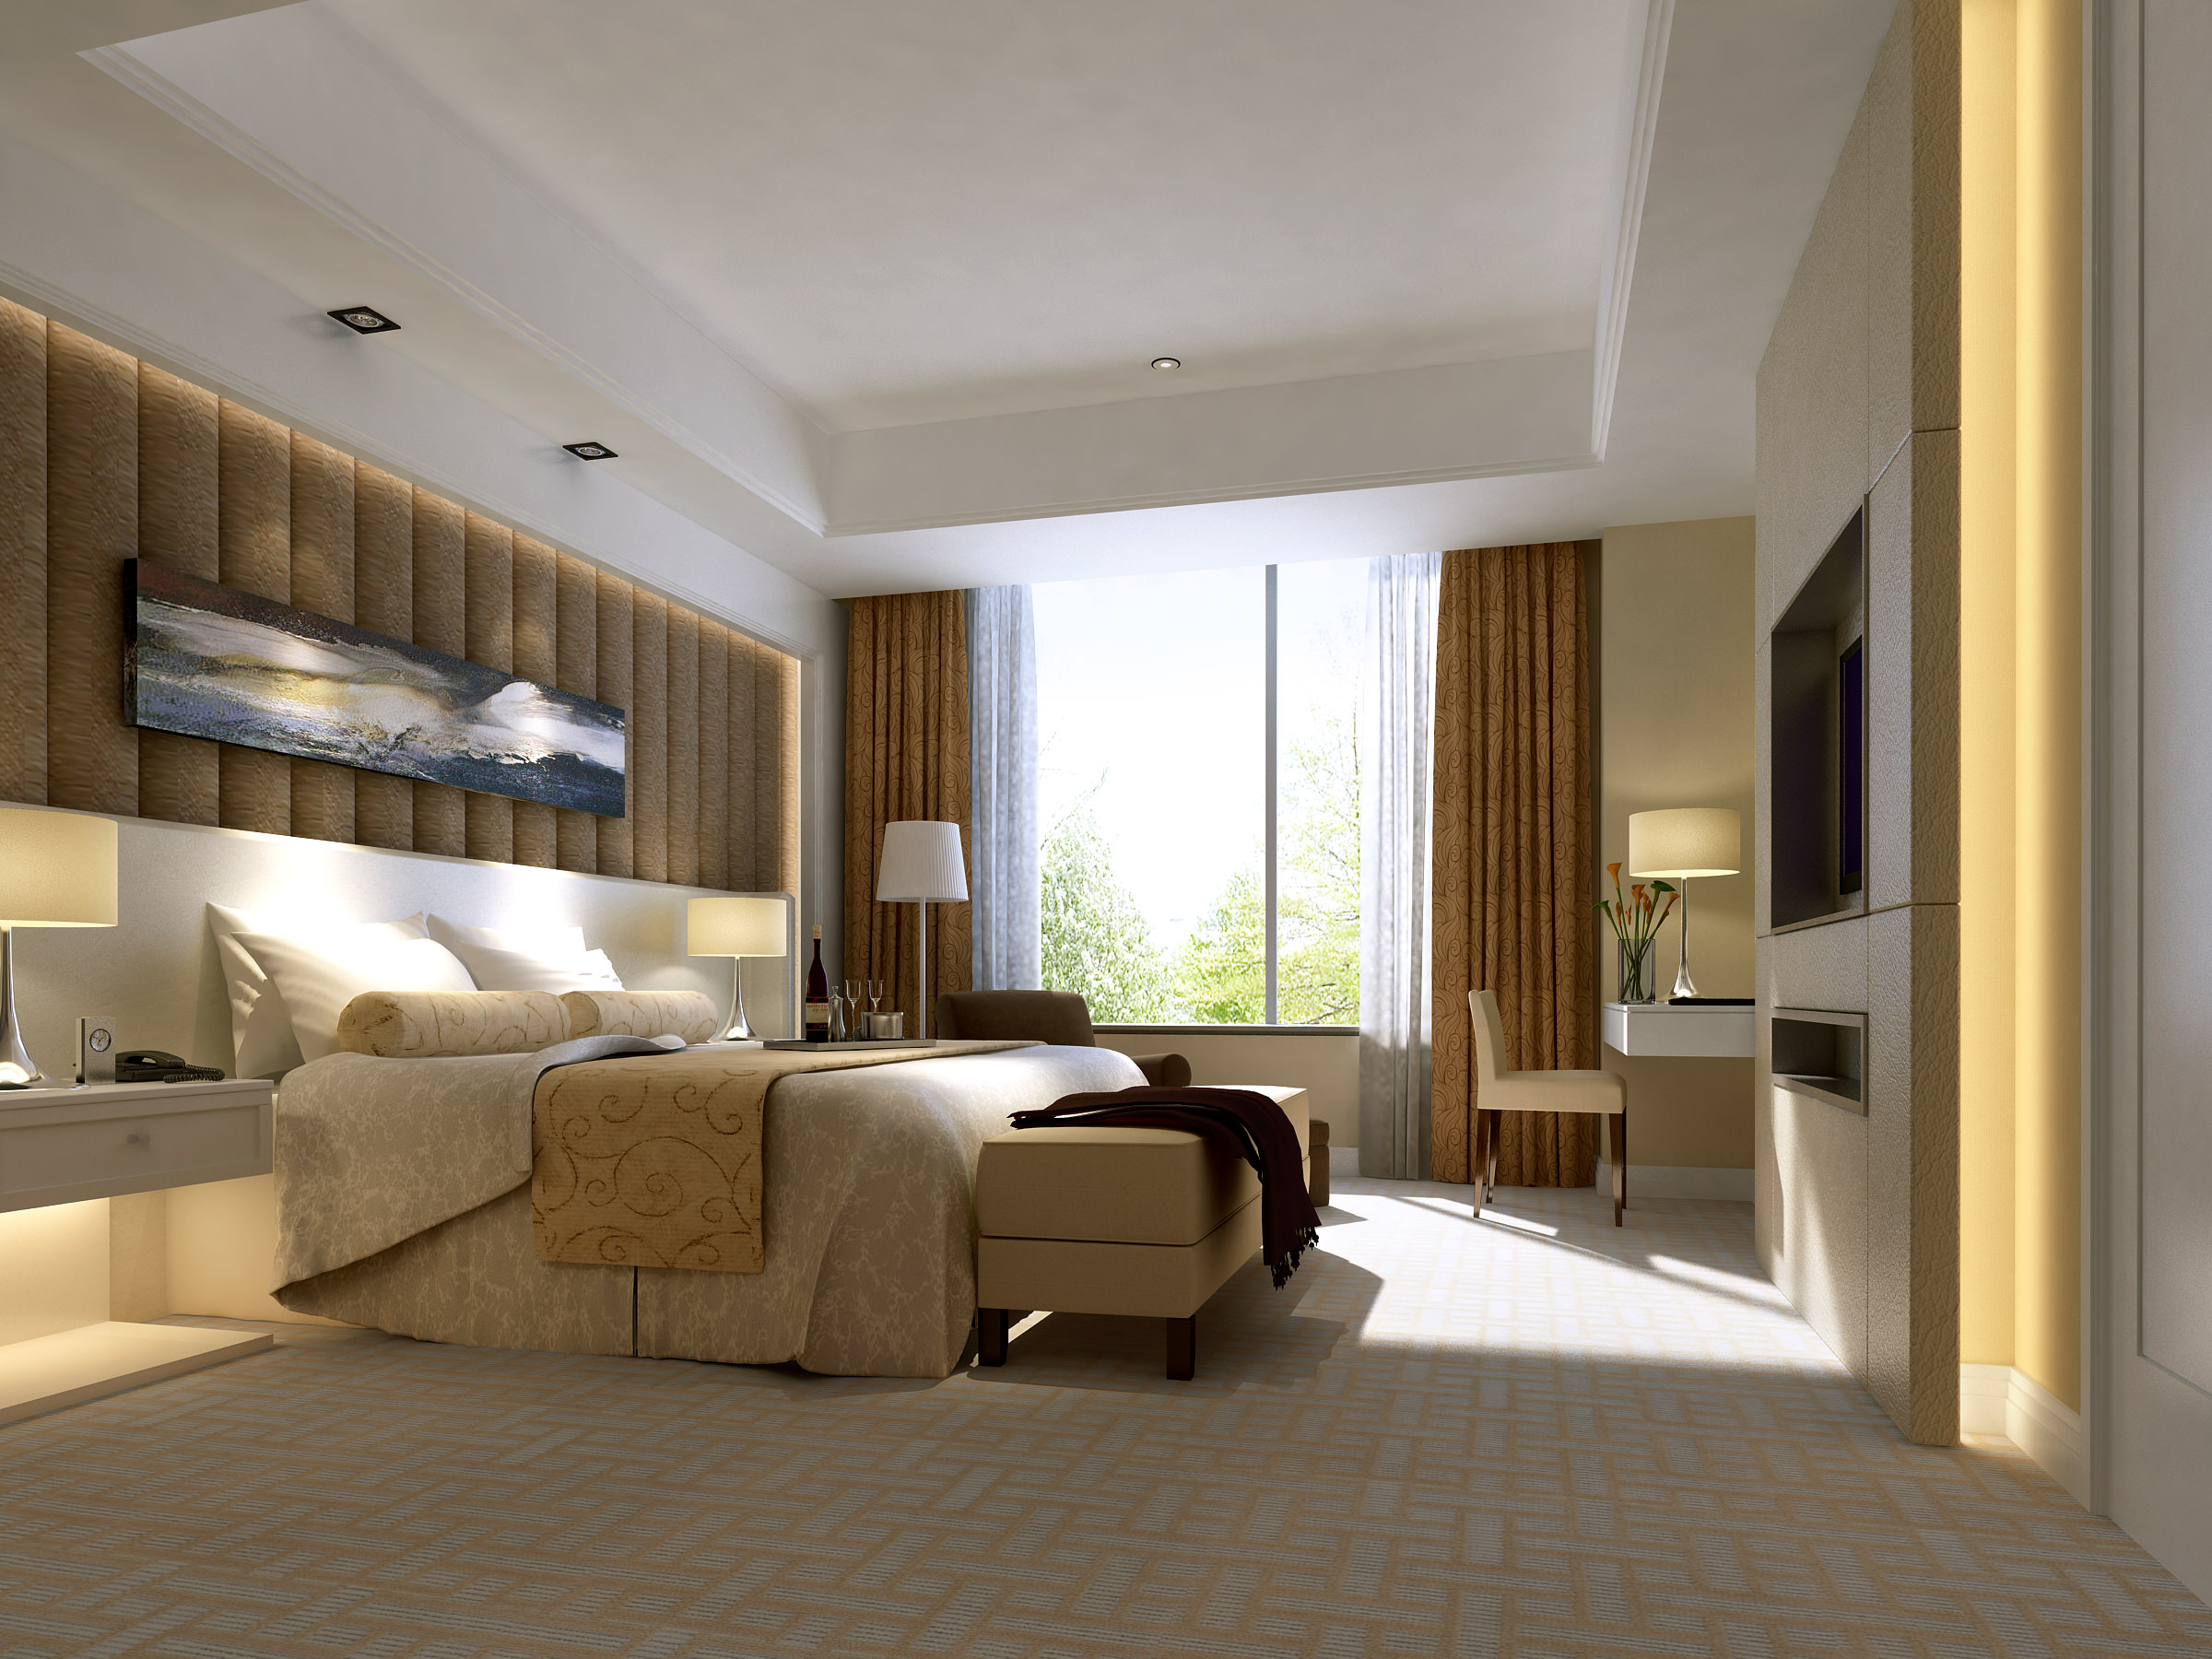 Living room and bedroom collection 16 3d model max for Model bedroom interior design